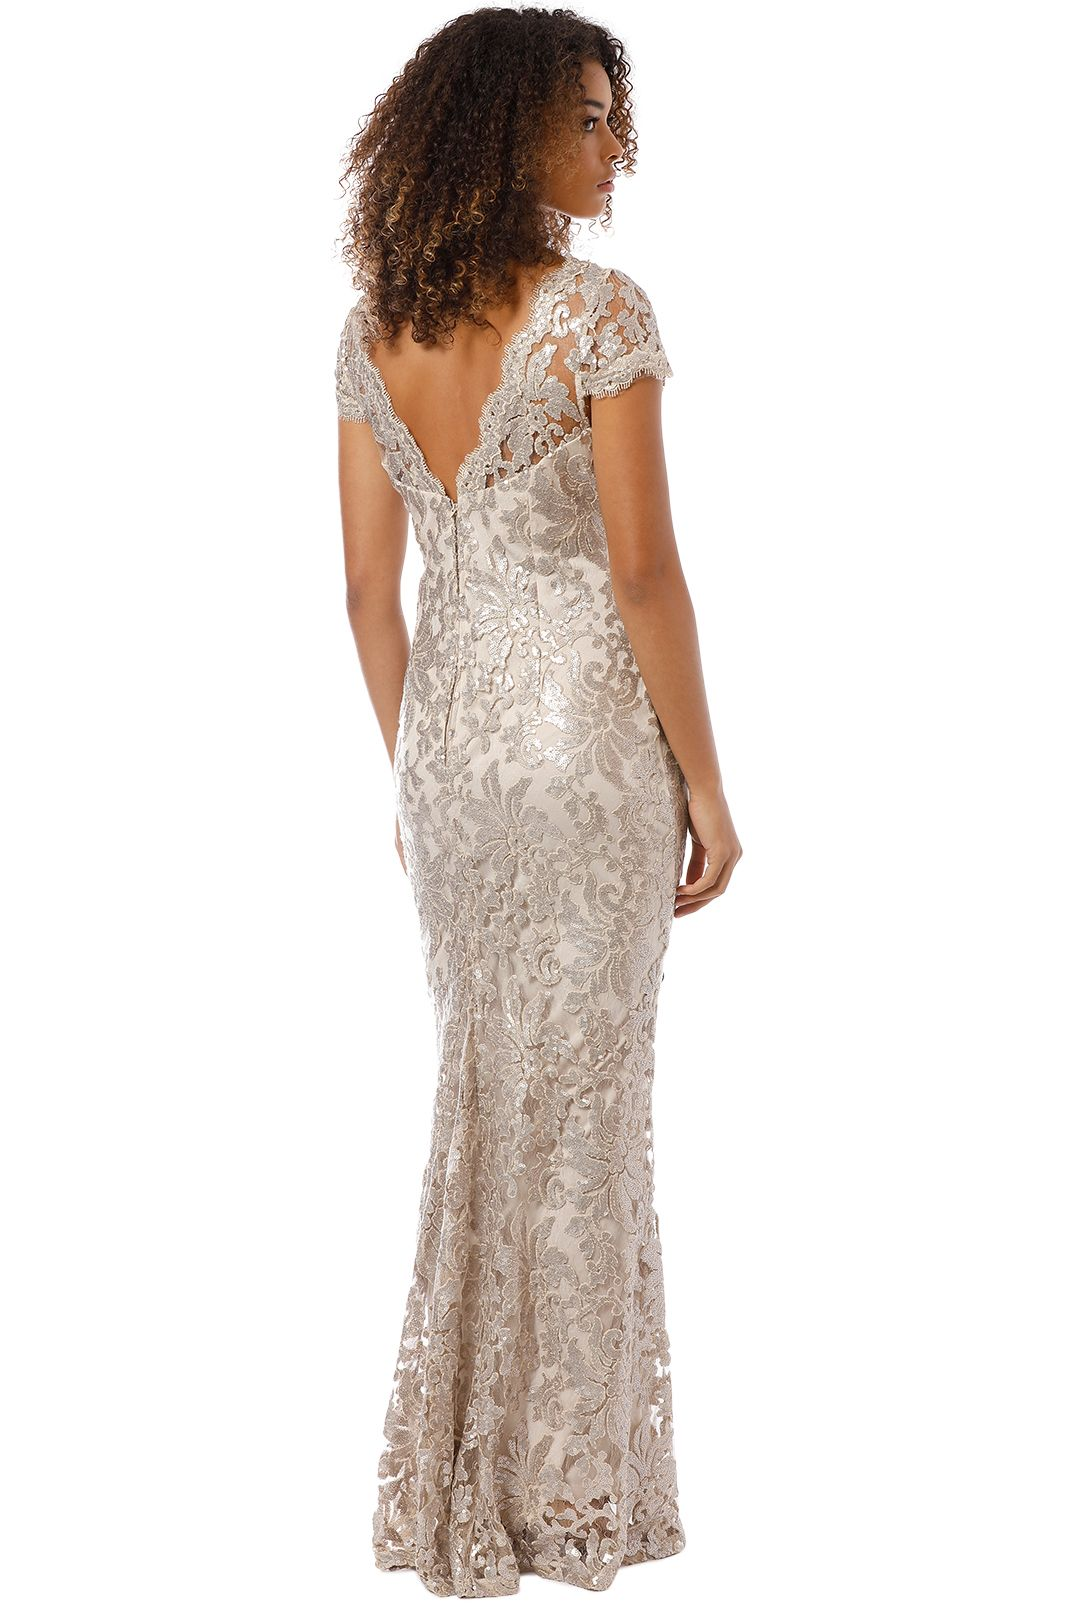 Montique - Aubrey Embroidered Lace Gown - Mink - Back